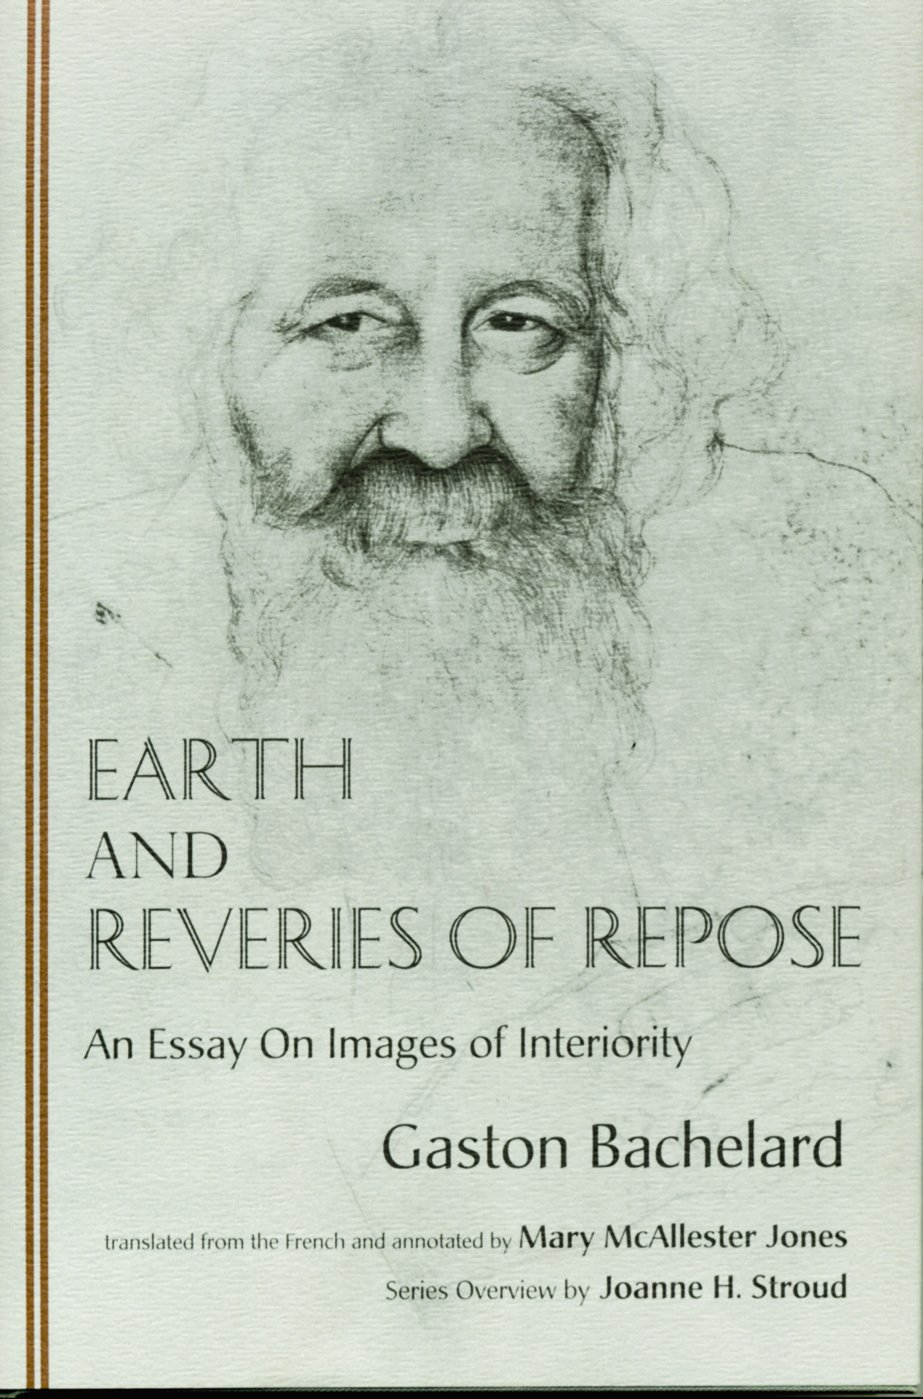 earth and reveries of repose an essay on images of interiority earth and reveries of repose an essay on images of interiority gaston bachelard mary mcallester jones joanne h stroud cover illustration robert